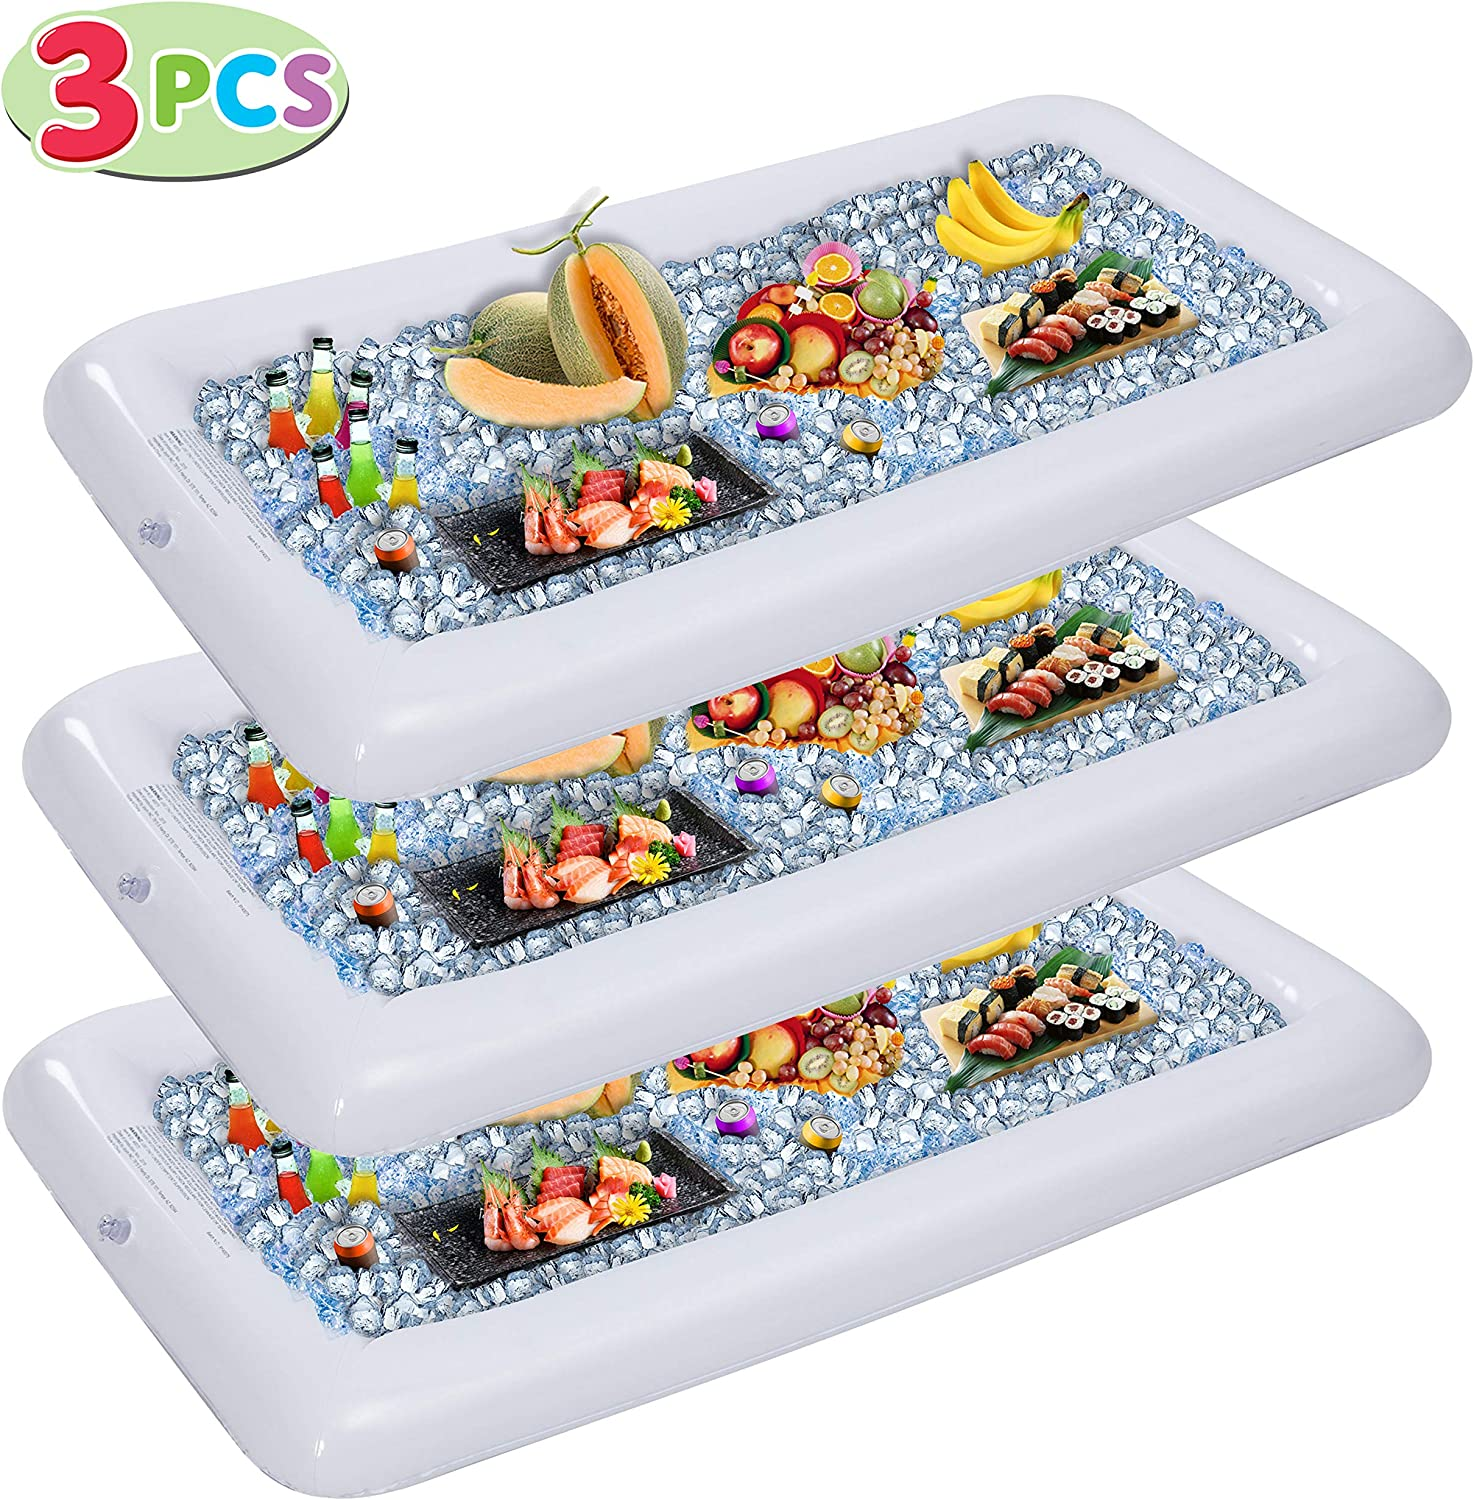 Inflatable Serving Bars with Drain Plug (3 Sets), Inflatable Cooler Ice Buffet Salad Serving Trays for Indoor Outdoor Summer Beach Luau Party, Picnic, and Pool Party